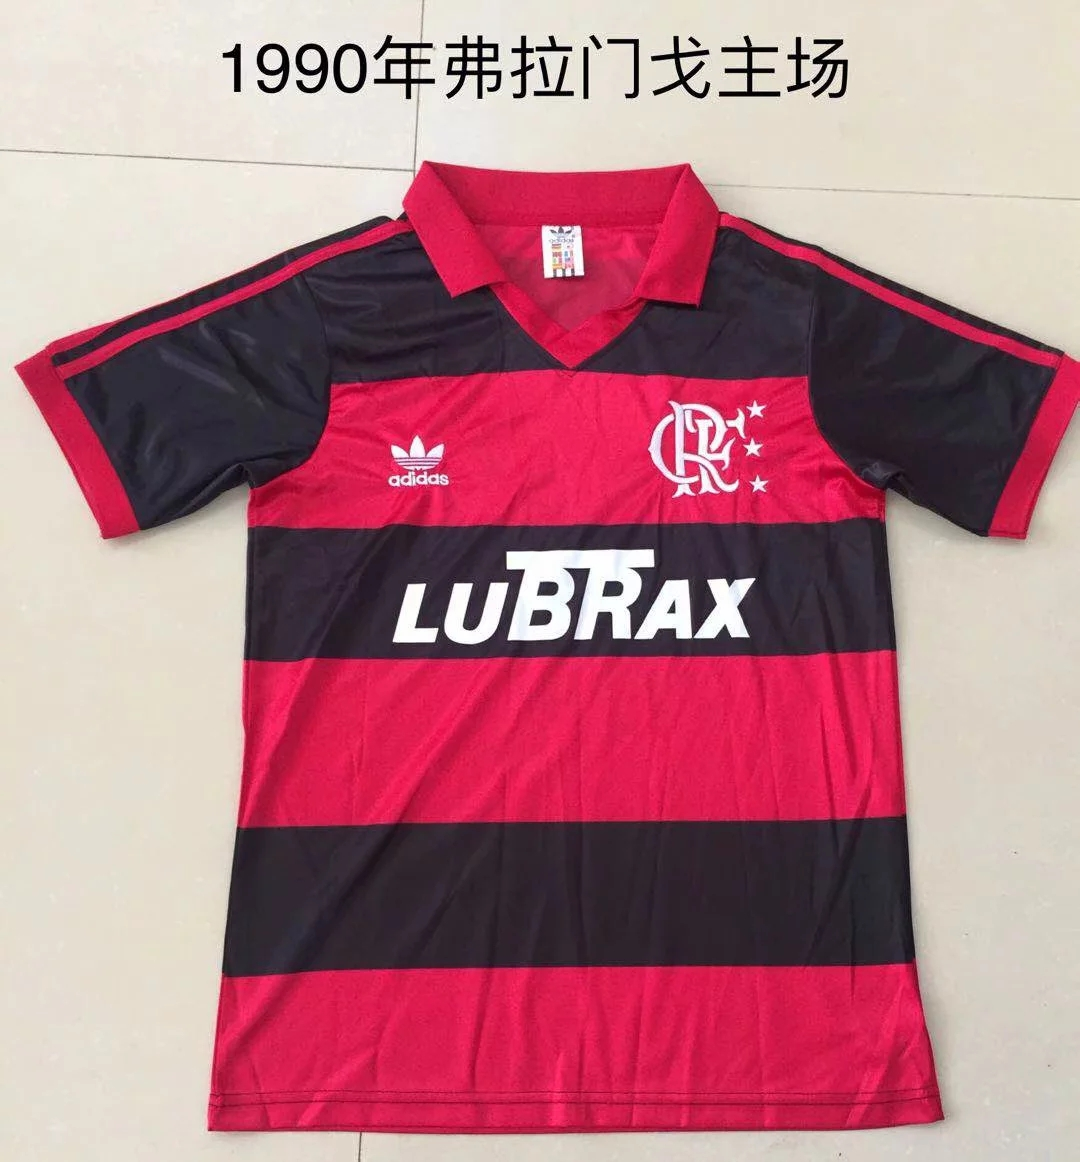 1990-flamengo-home-retro-football-jersey-4.jpg